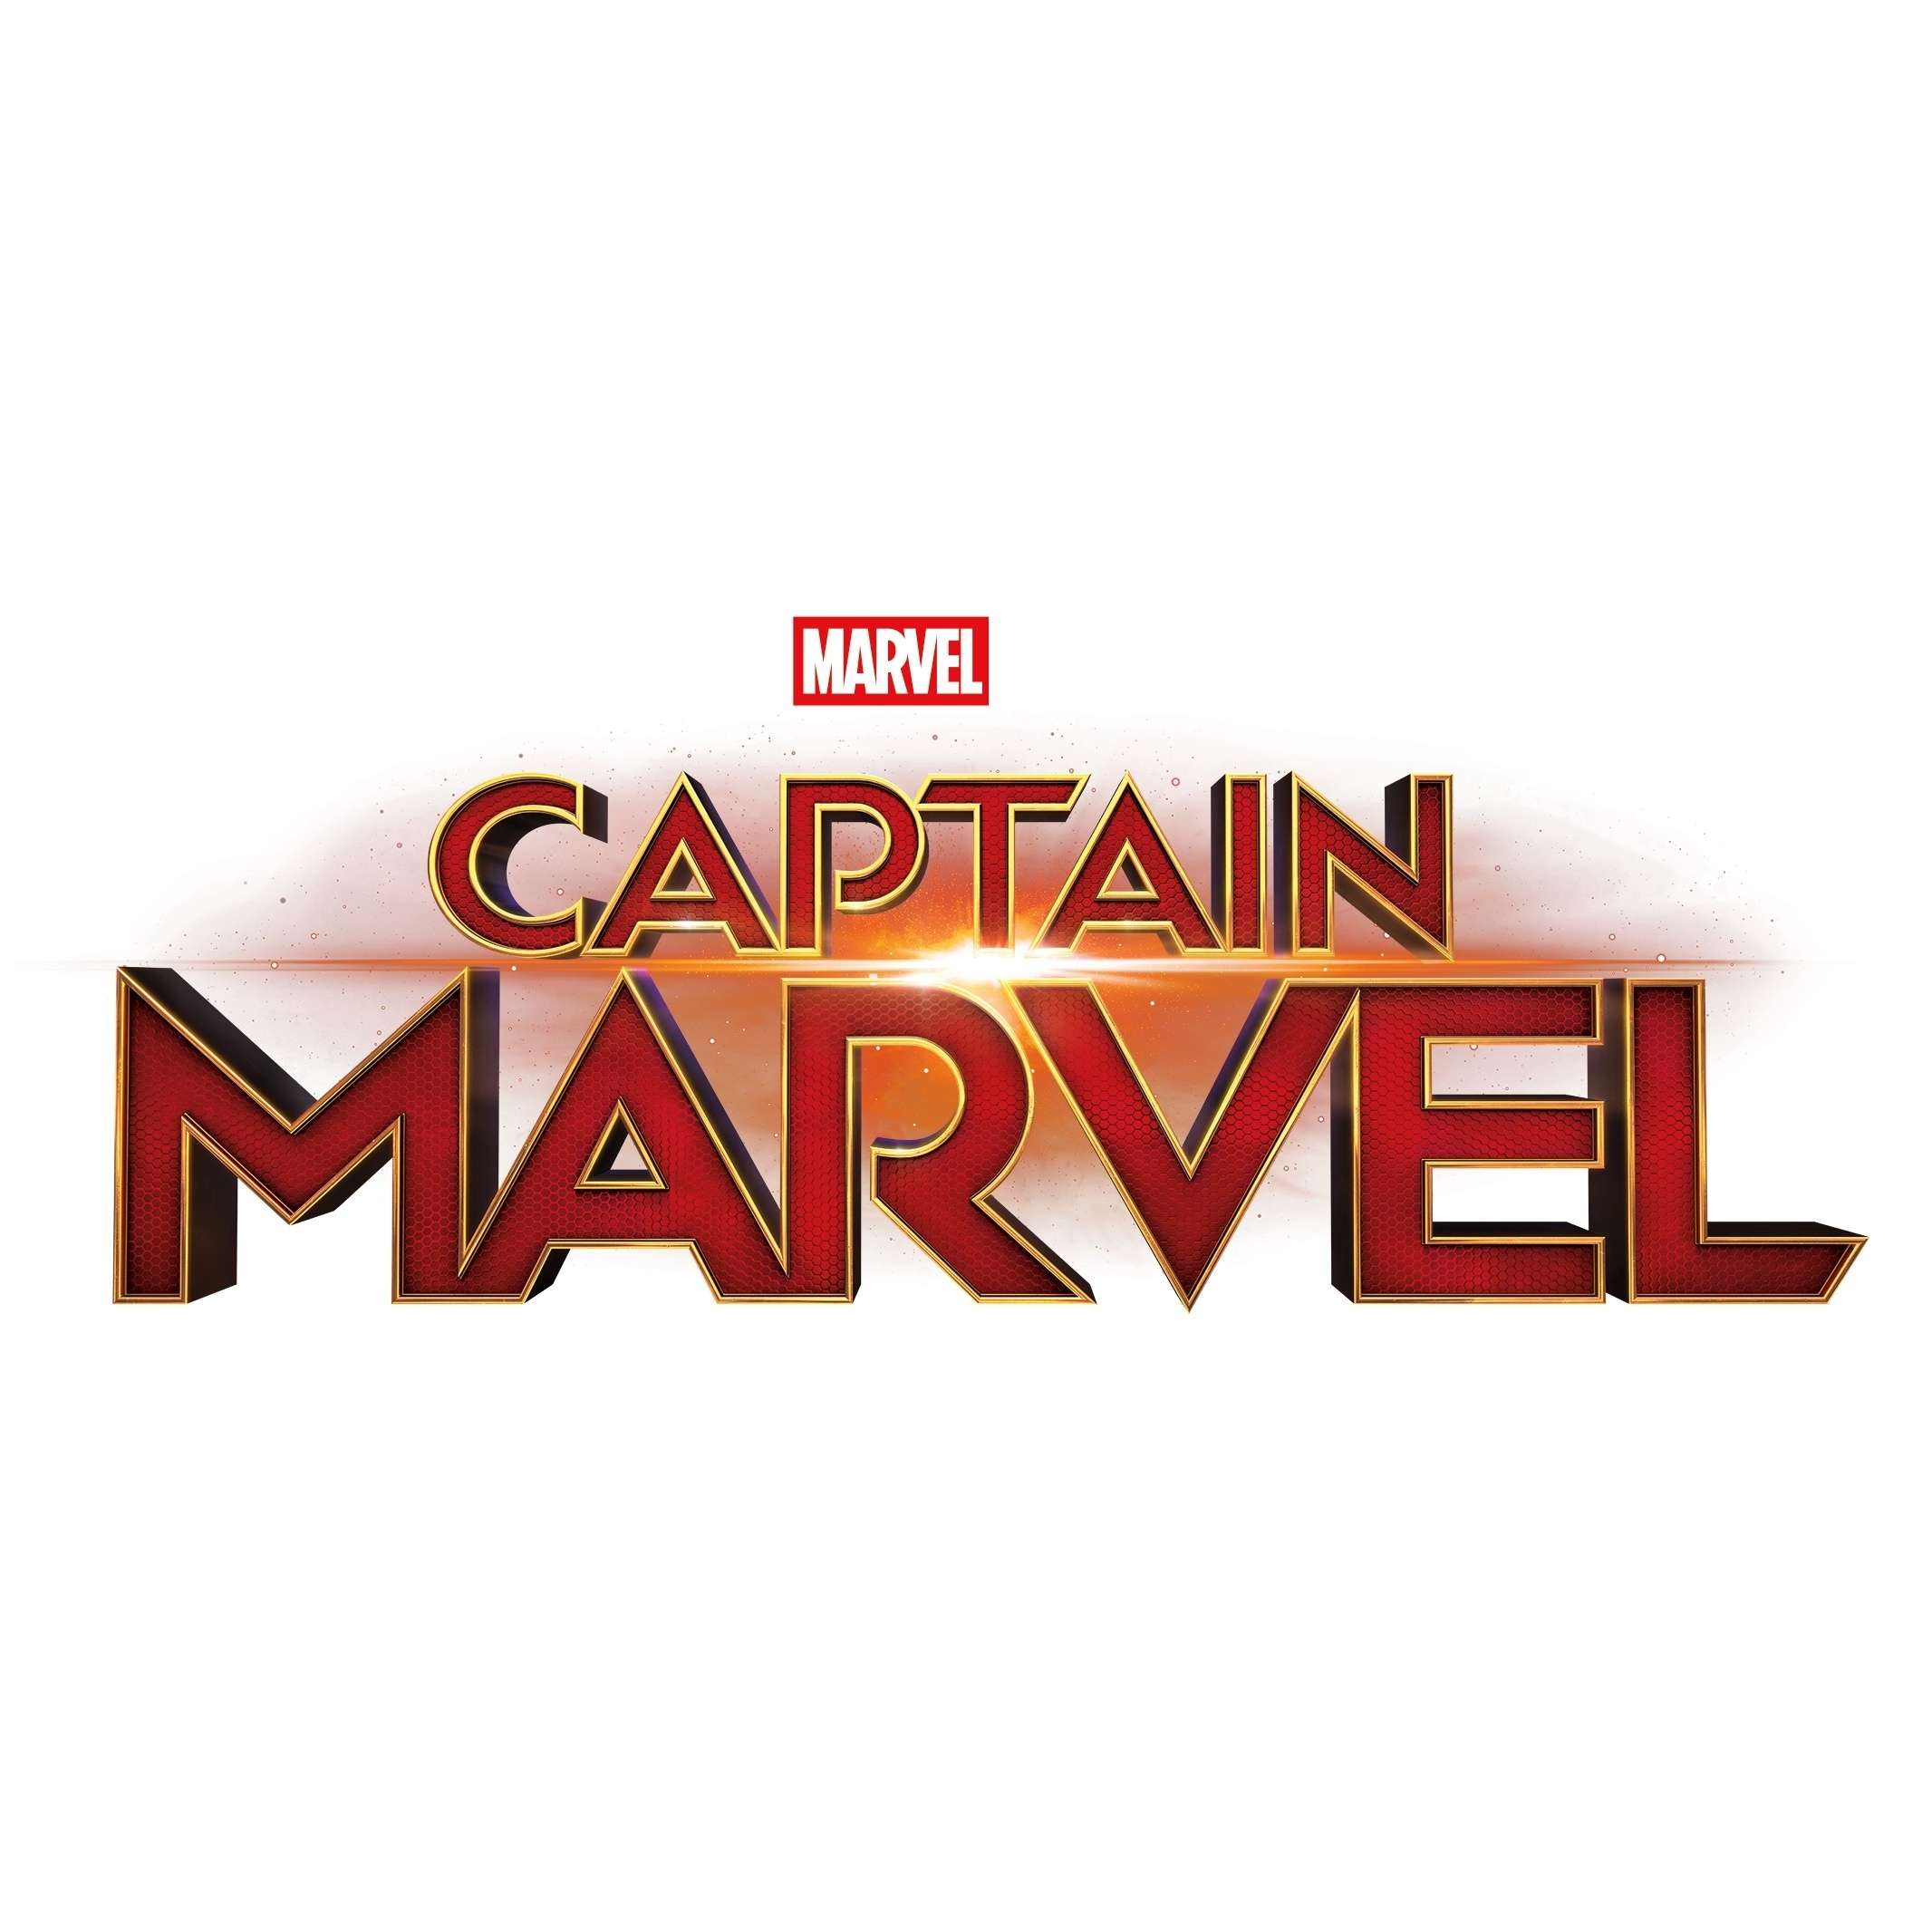 capitan marvel disney role model valeria cagnina francesco baldassarre ofpassion